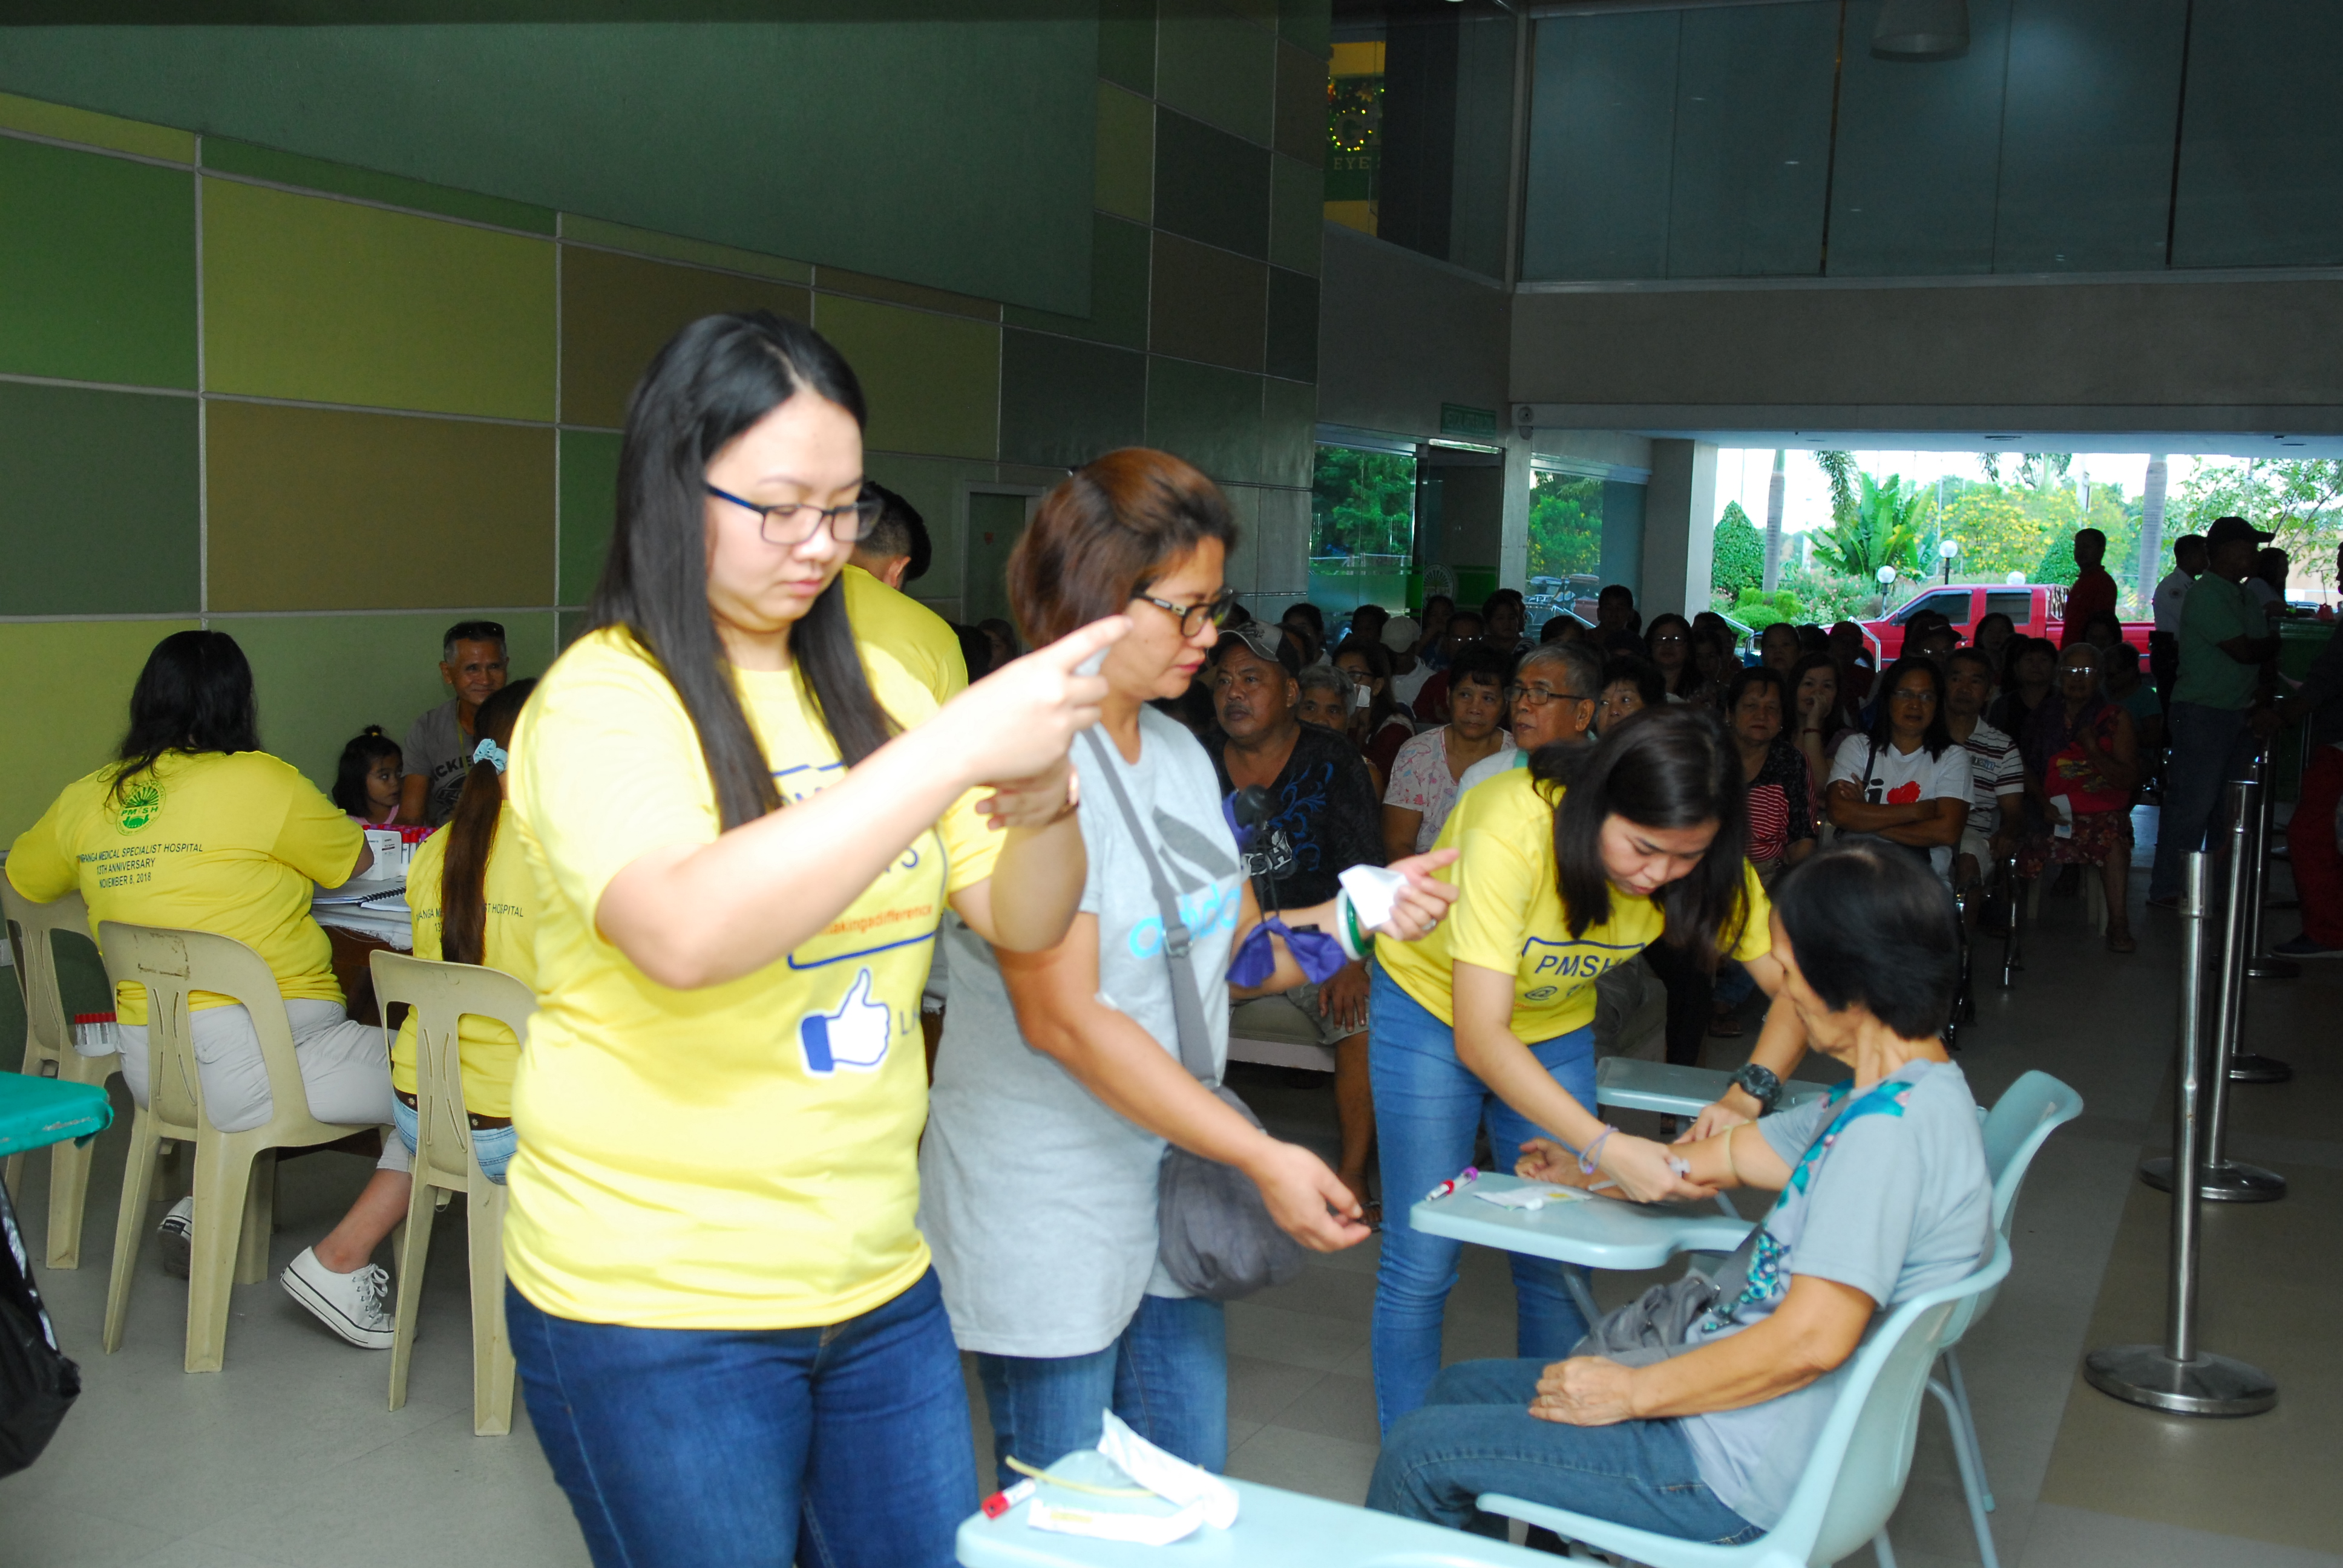 PMSH 13TH ANNIVERSARY(BLOOD LETTING & FREE LAB)